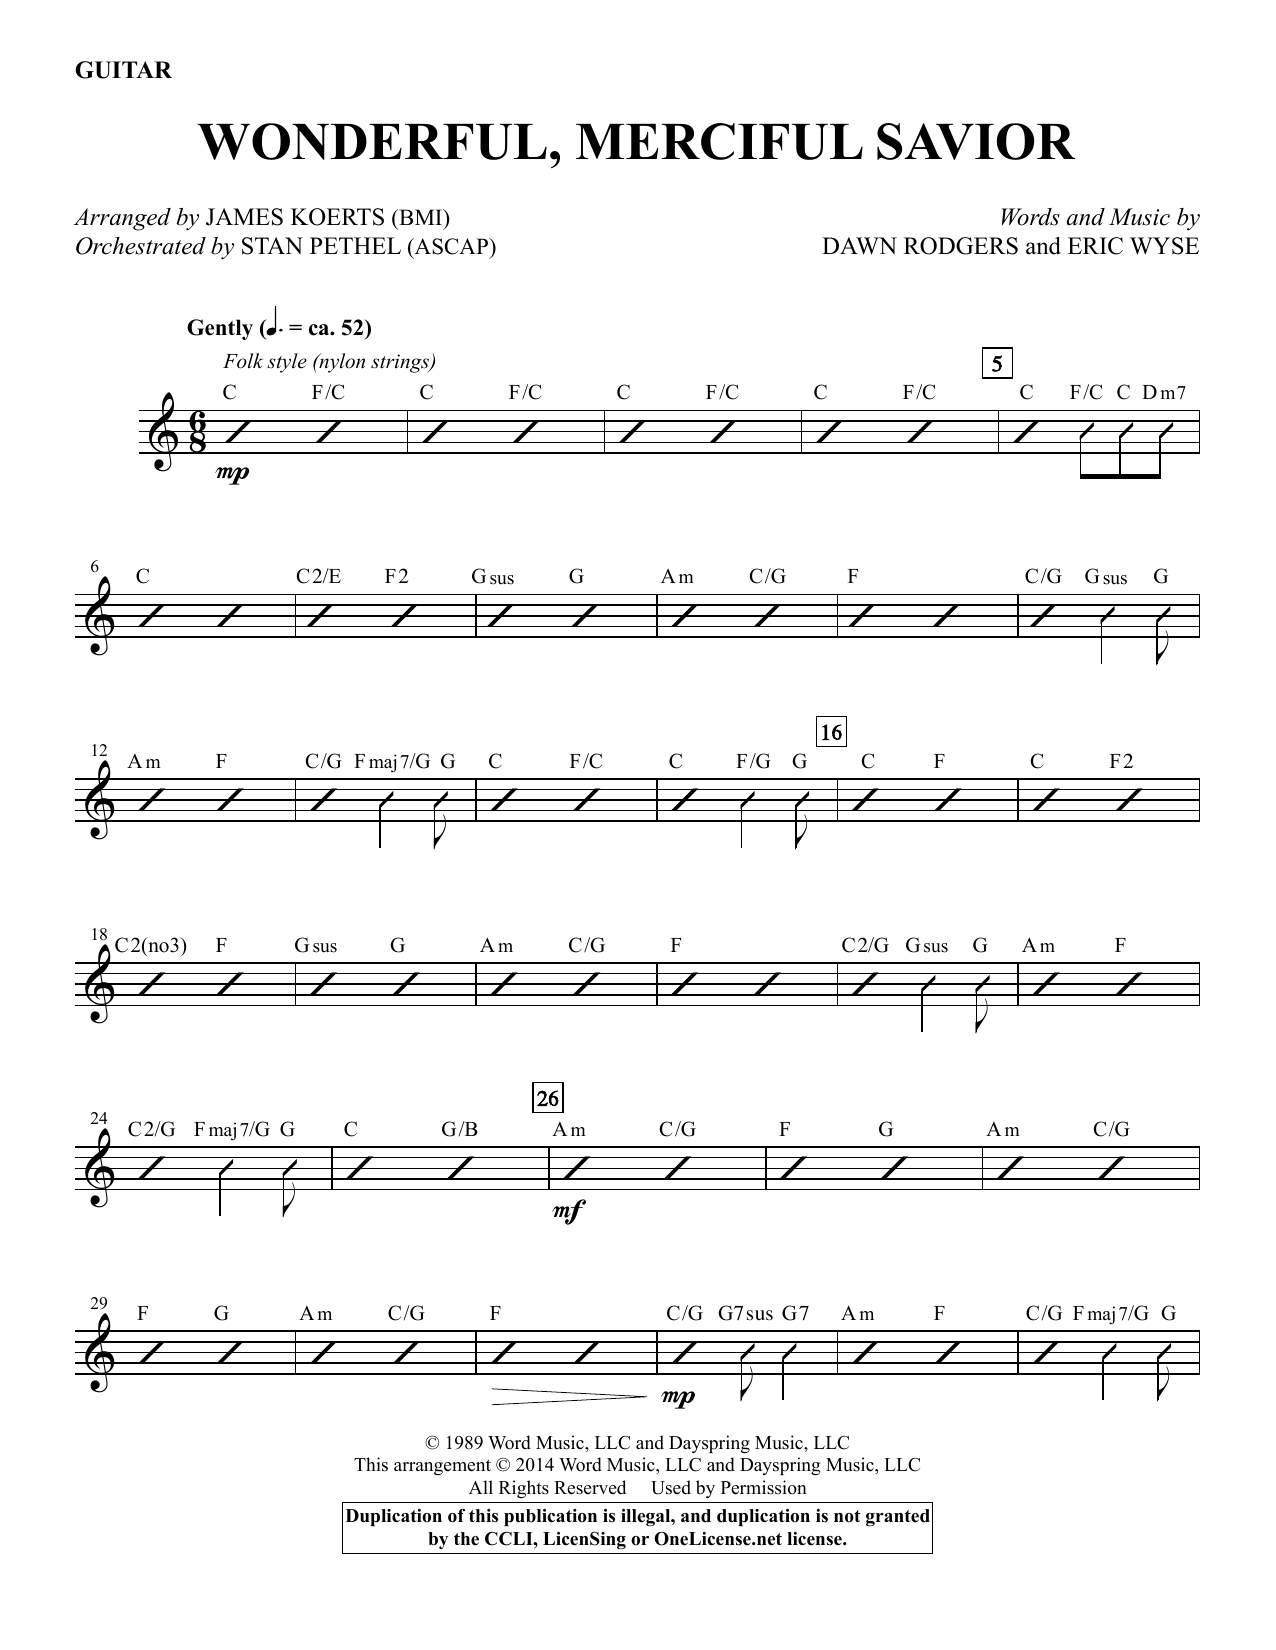 Wonderful, Merciful Savior - Guitar Sheet Music